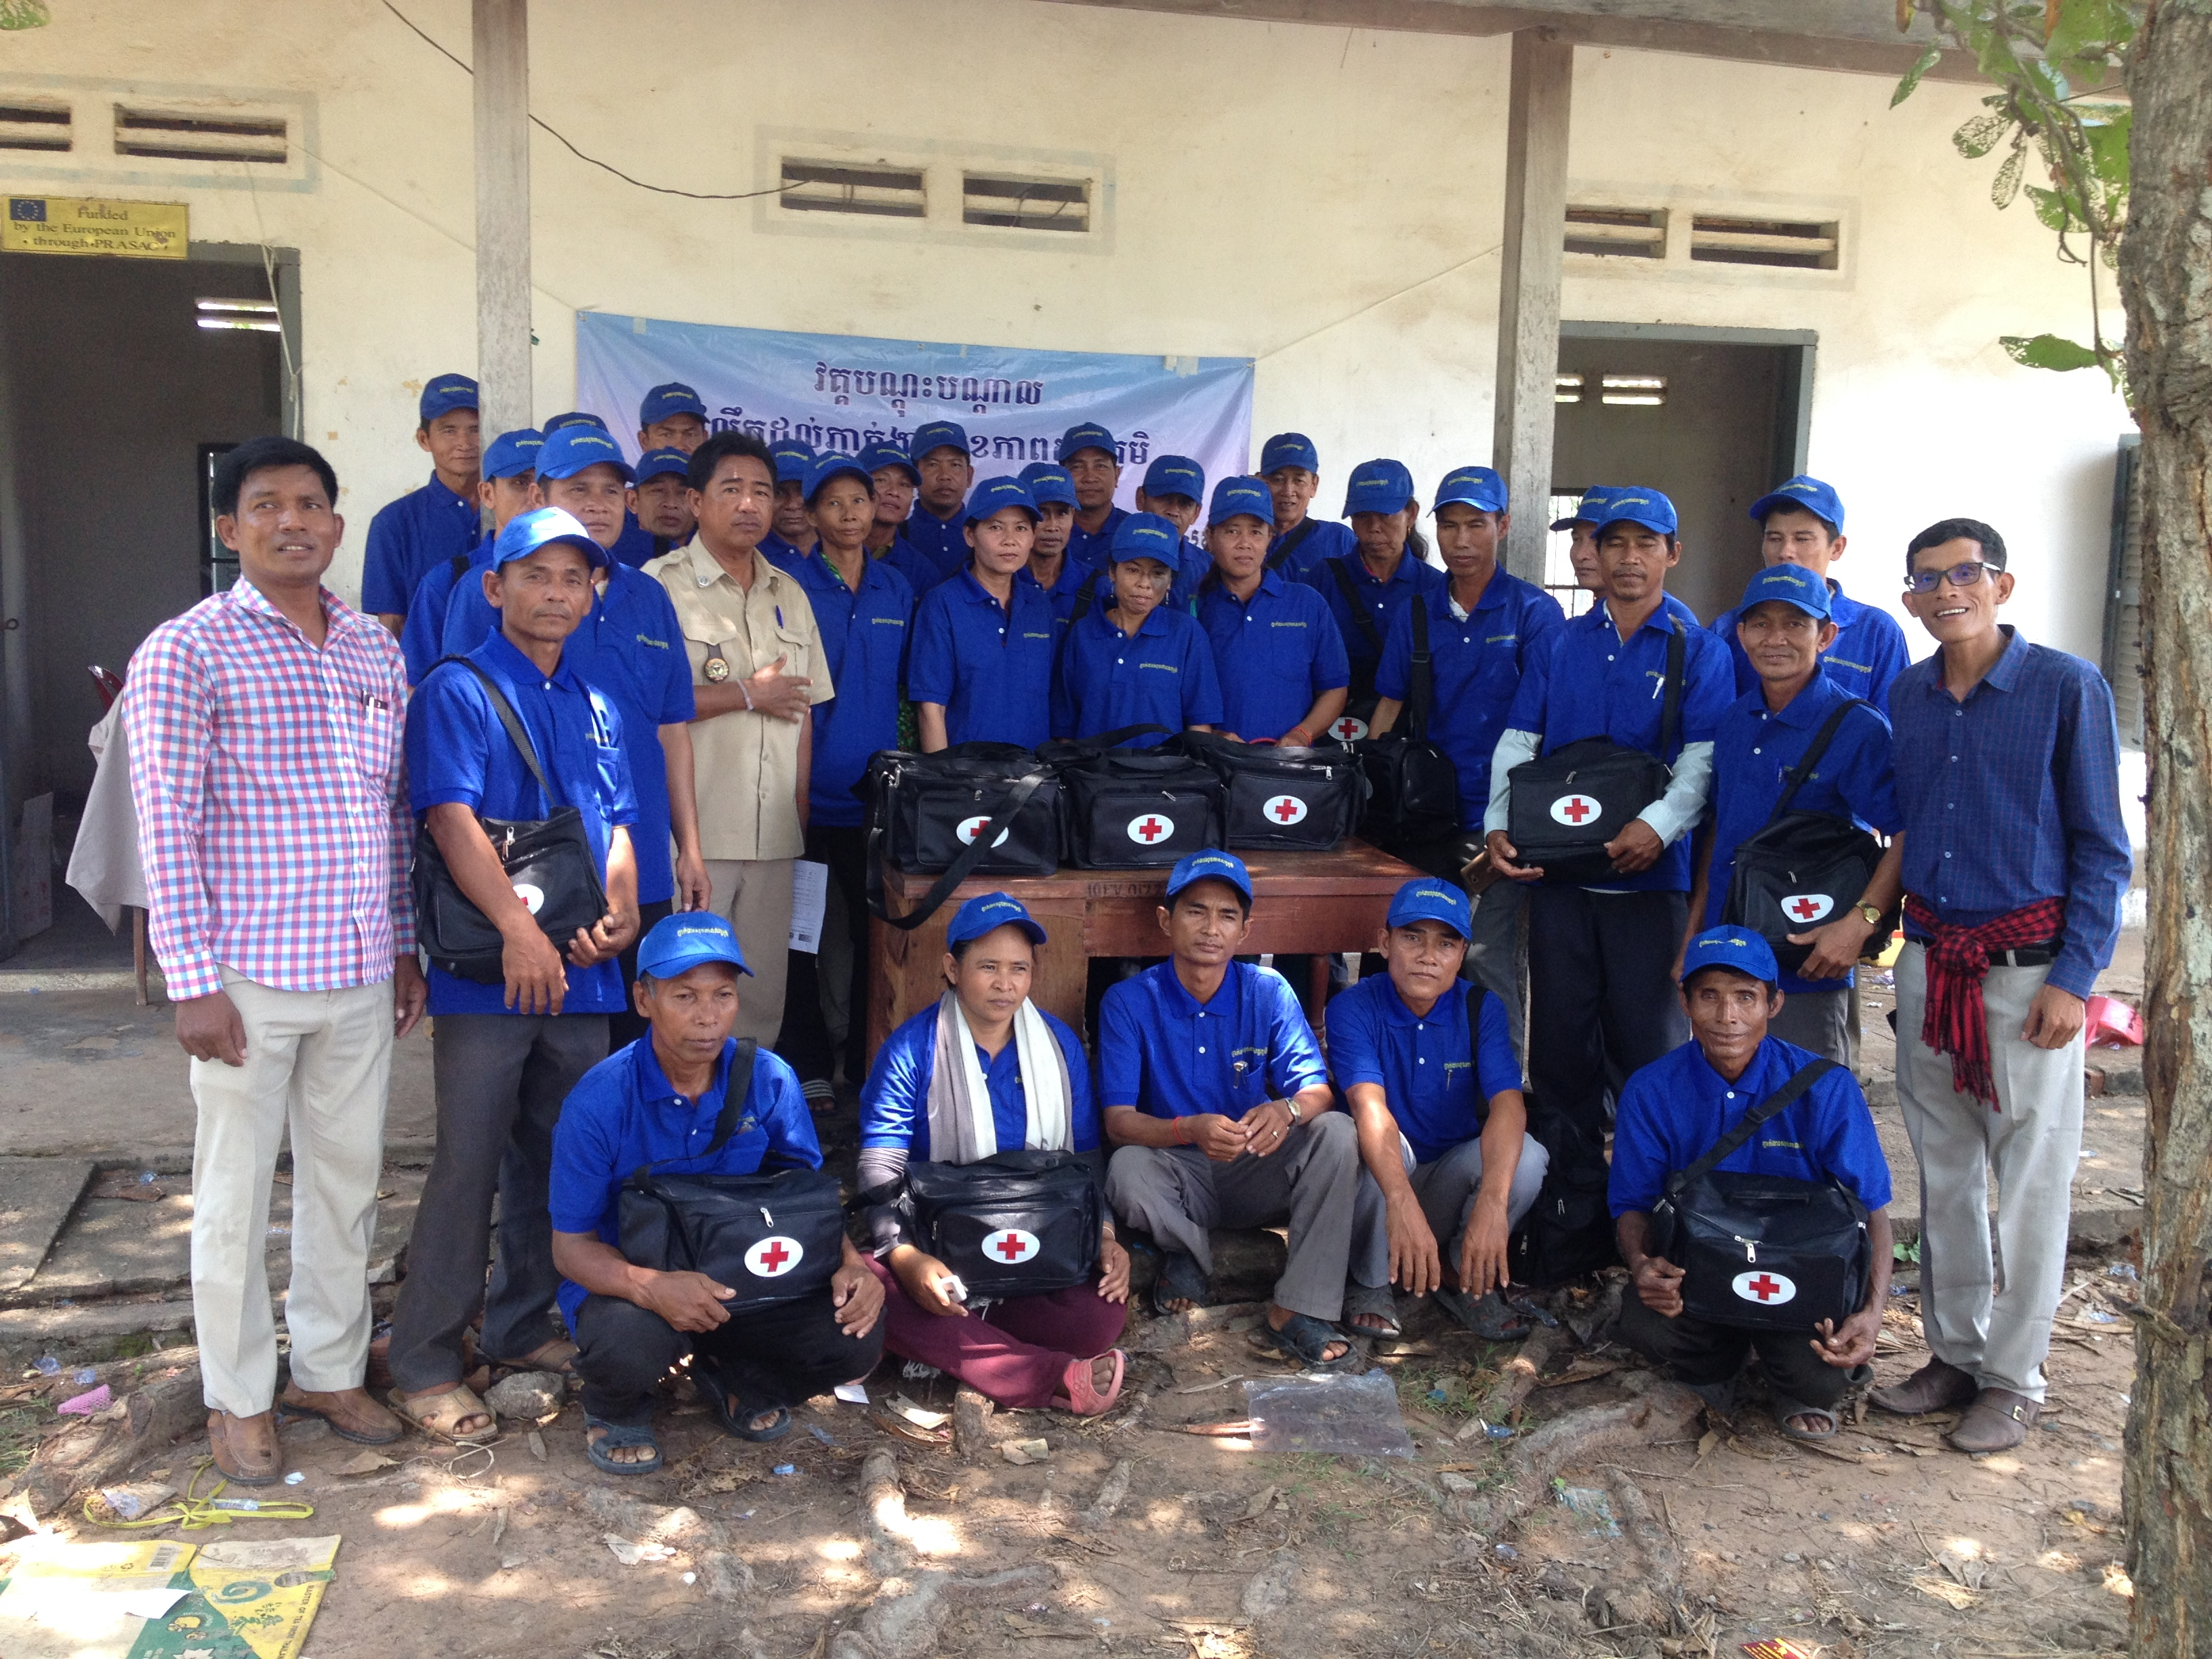 Village Animal Health Workers in Cambodia  Image principale